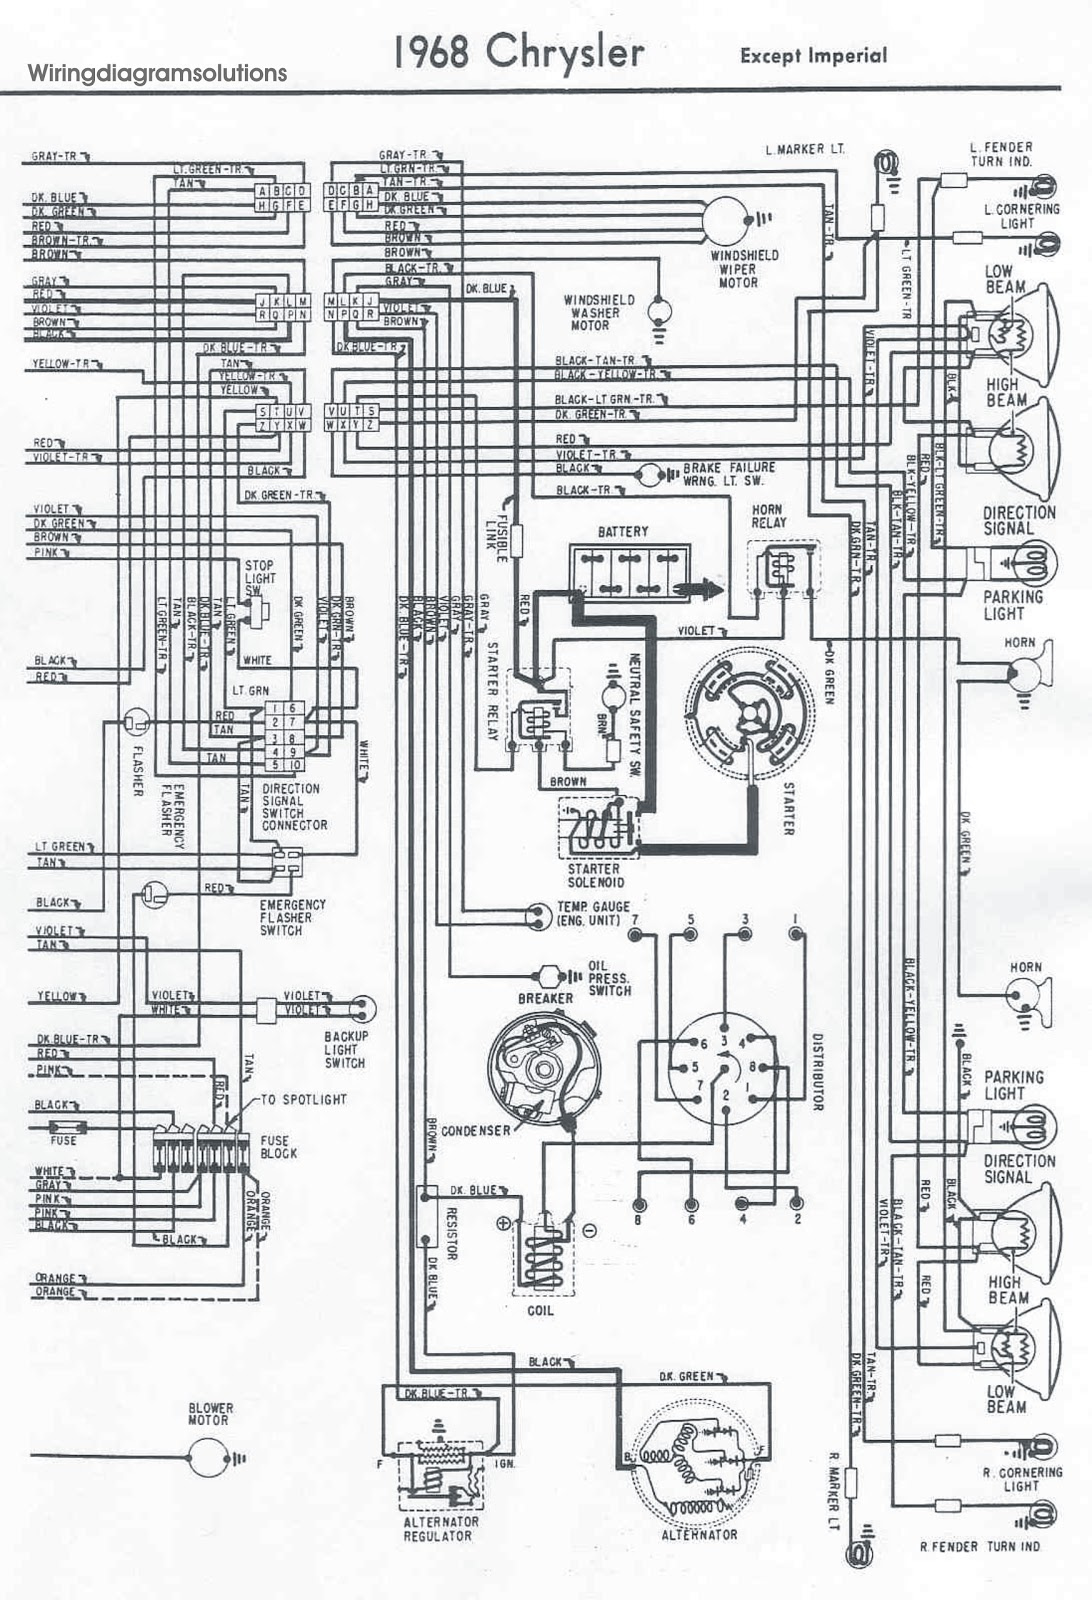 1968+Chrysler Understanding Electrical Wiring Diagrams on understanding home electrical wiring, understanding electrical circuit diagrams, understanding electrical line diagrams, understanding basic electrical wiring, understanding wiring schematics, understanding ladder diagrams, understanding alternating current diagrams, reading electrical diagrams, understanding wire diagrams, understanding schematic diagrams,